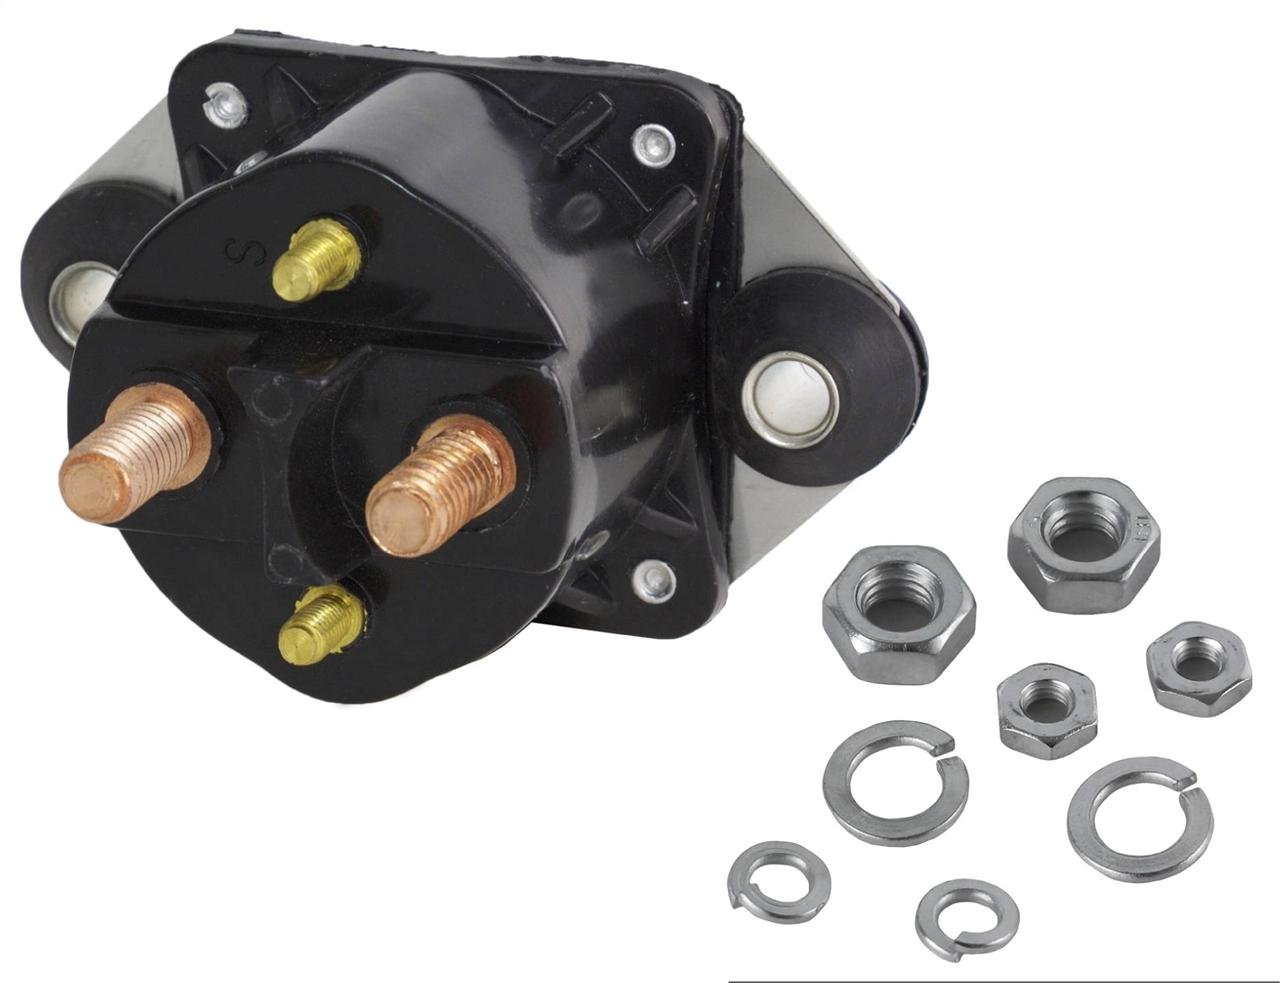 New Starter Solenoid Fits Mercury Marine 65 75 80 90 100 105 115 125 Hp Outboard Motor Wiring Diagram 135 V150 18 5834 Solenoids Amazon Canada